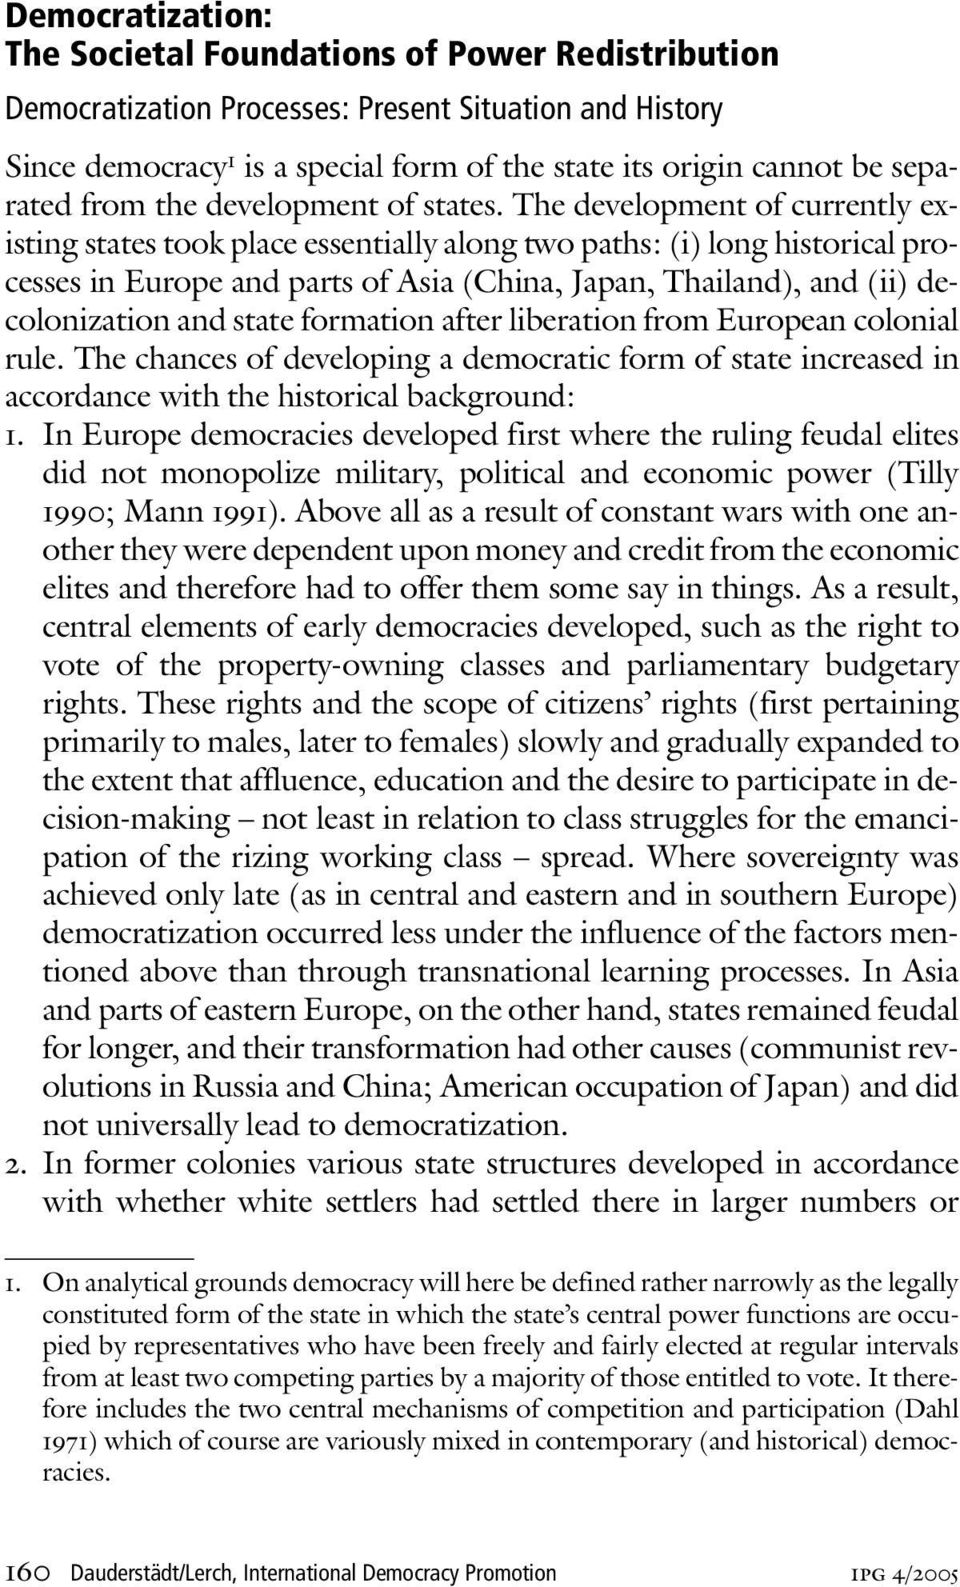 The development of currently existing states took place essentially along two paths: (i) long historical processes in Europe and parts of Asia (China, Japan, Thailand), and (ii) decolonization and